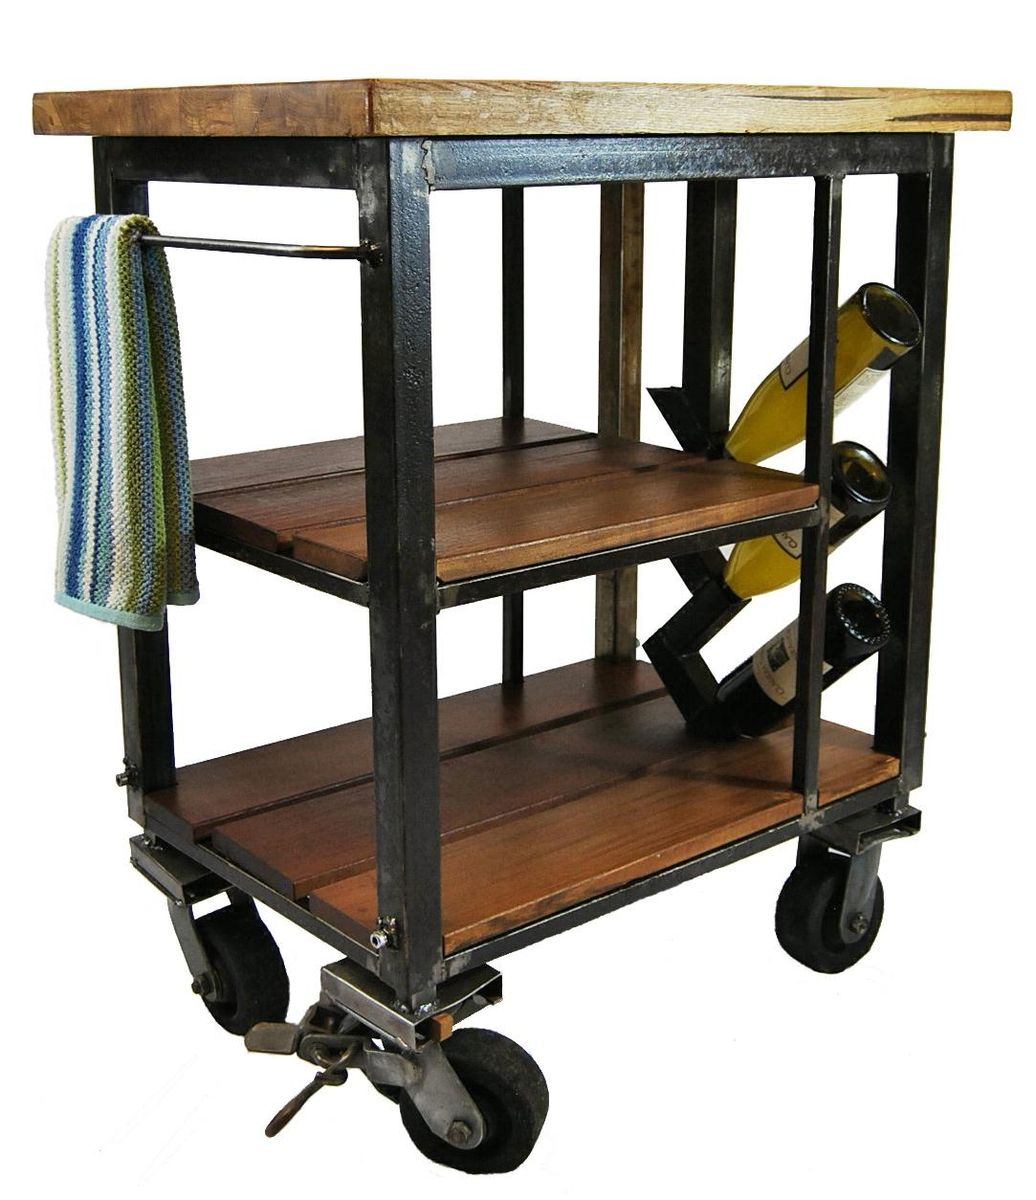 kitchen carts on wheels mid century modern chairs napa cart made from reclaimed butcher block and